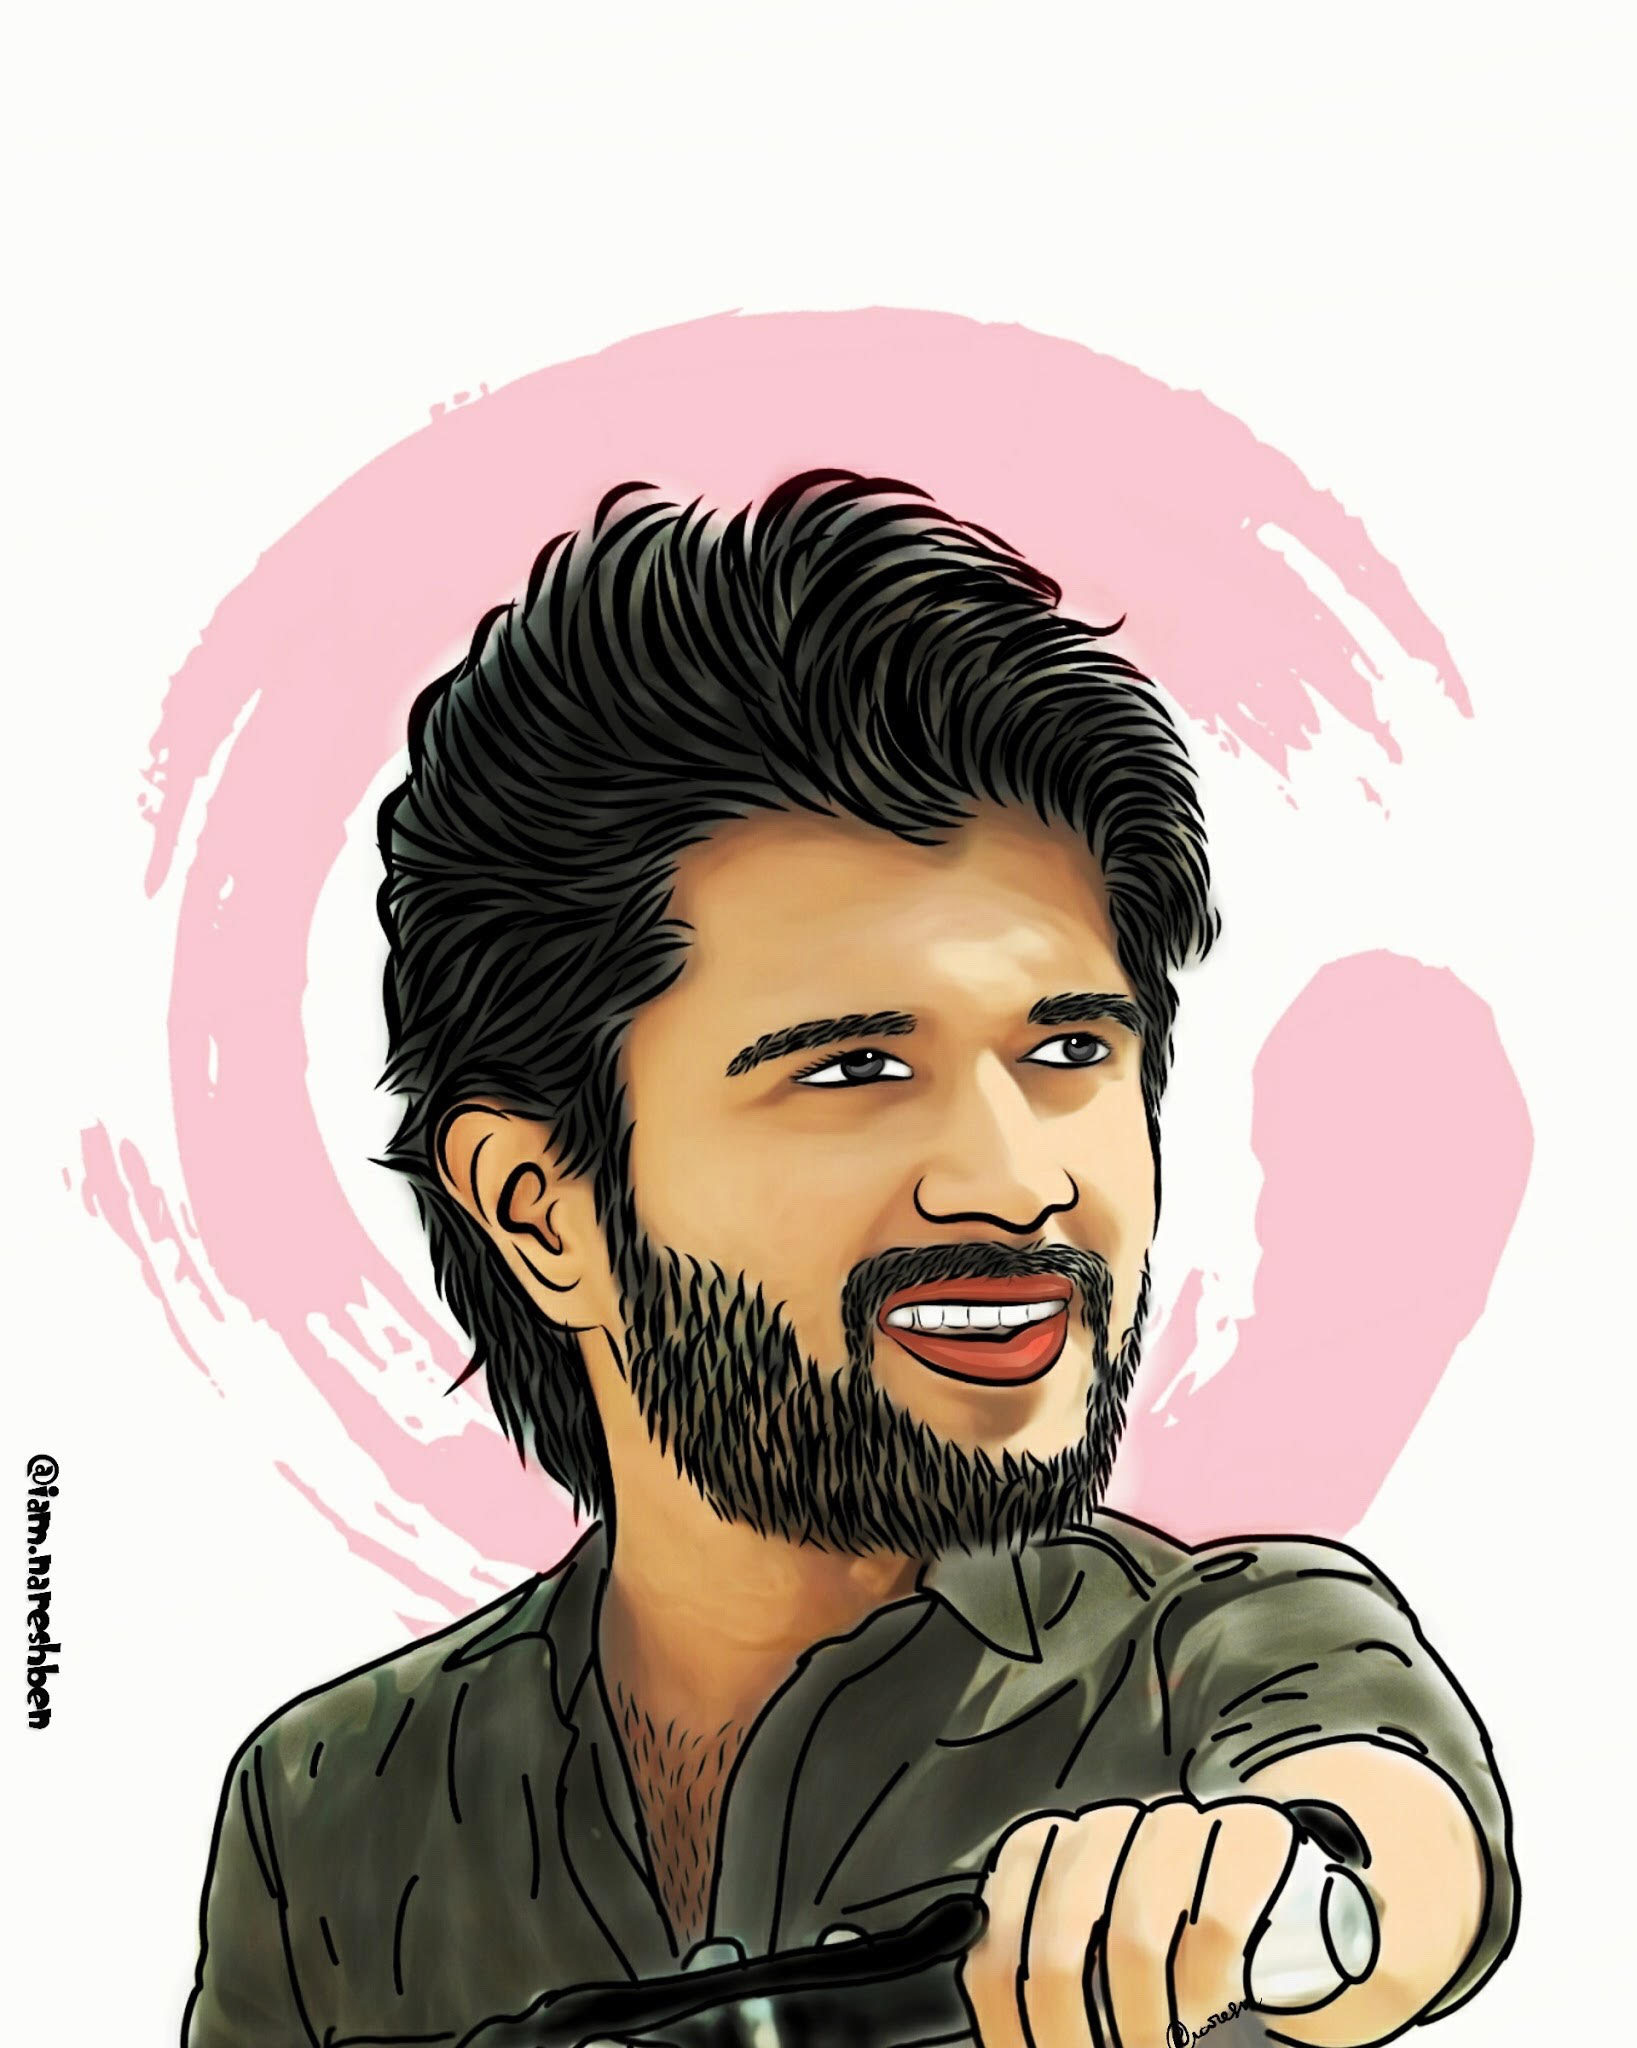 9. Vijay Deverakonda Wax Doll Art